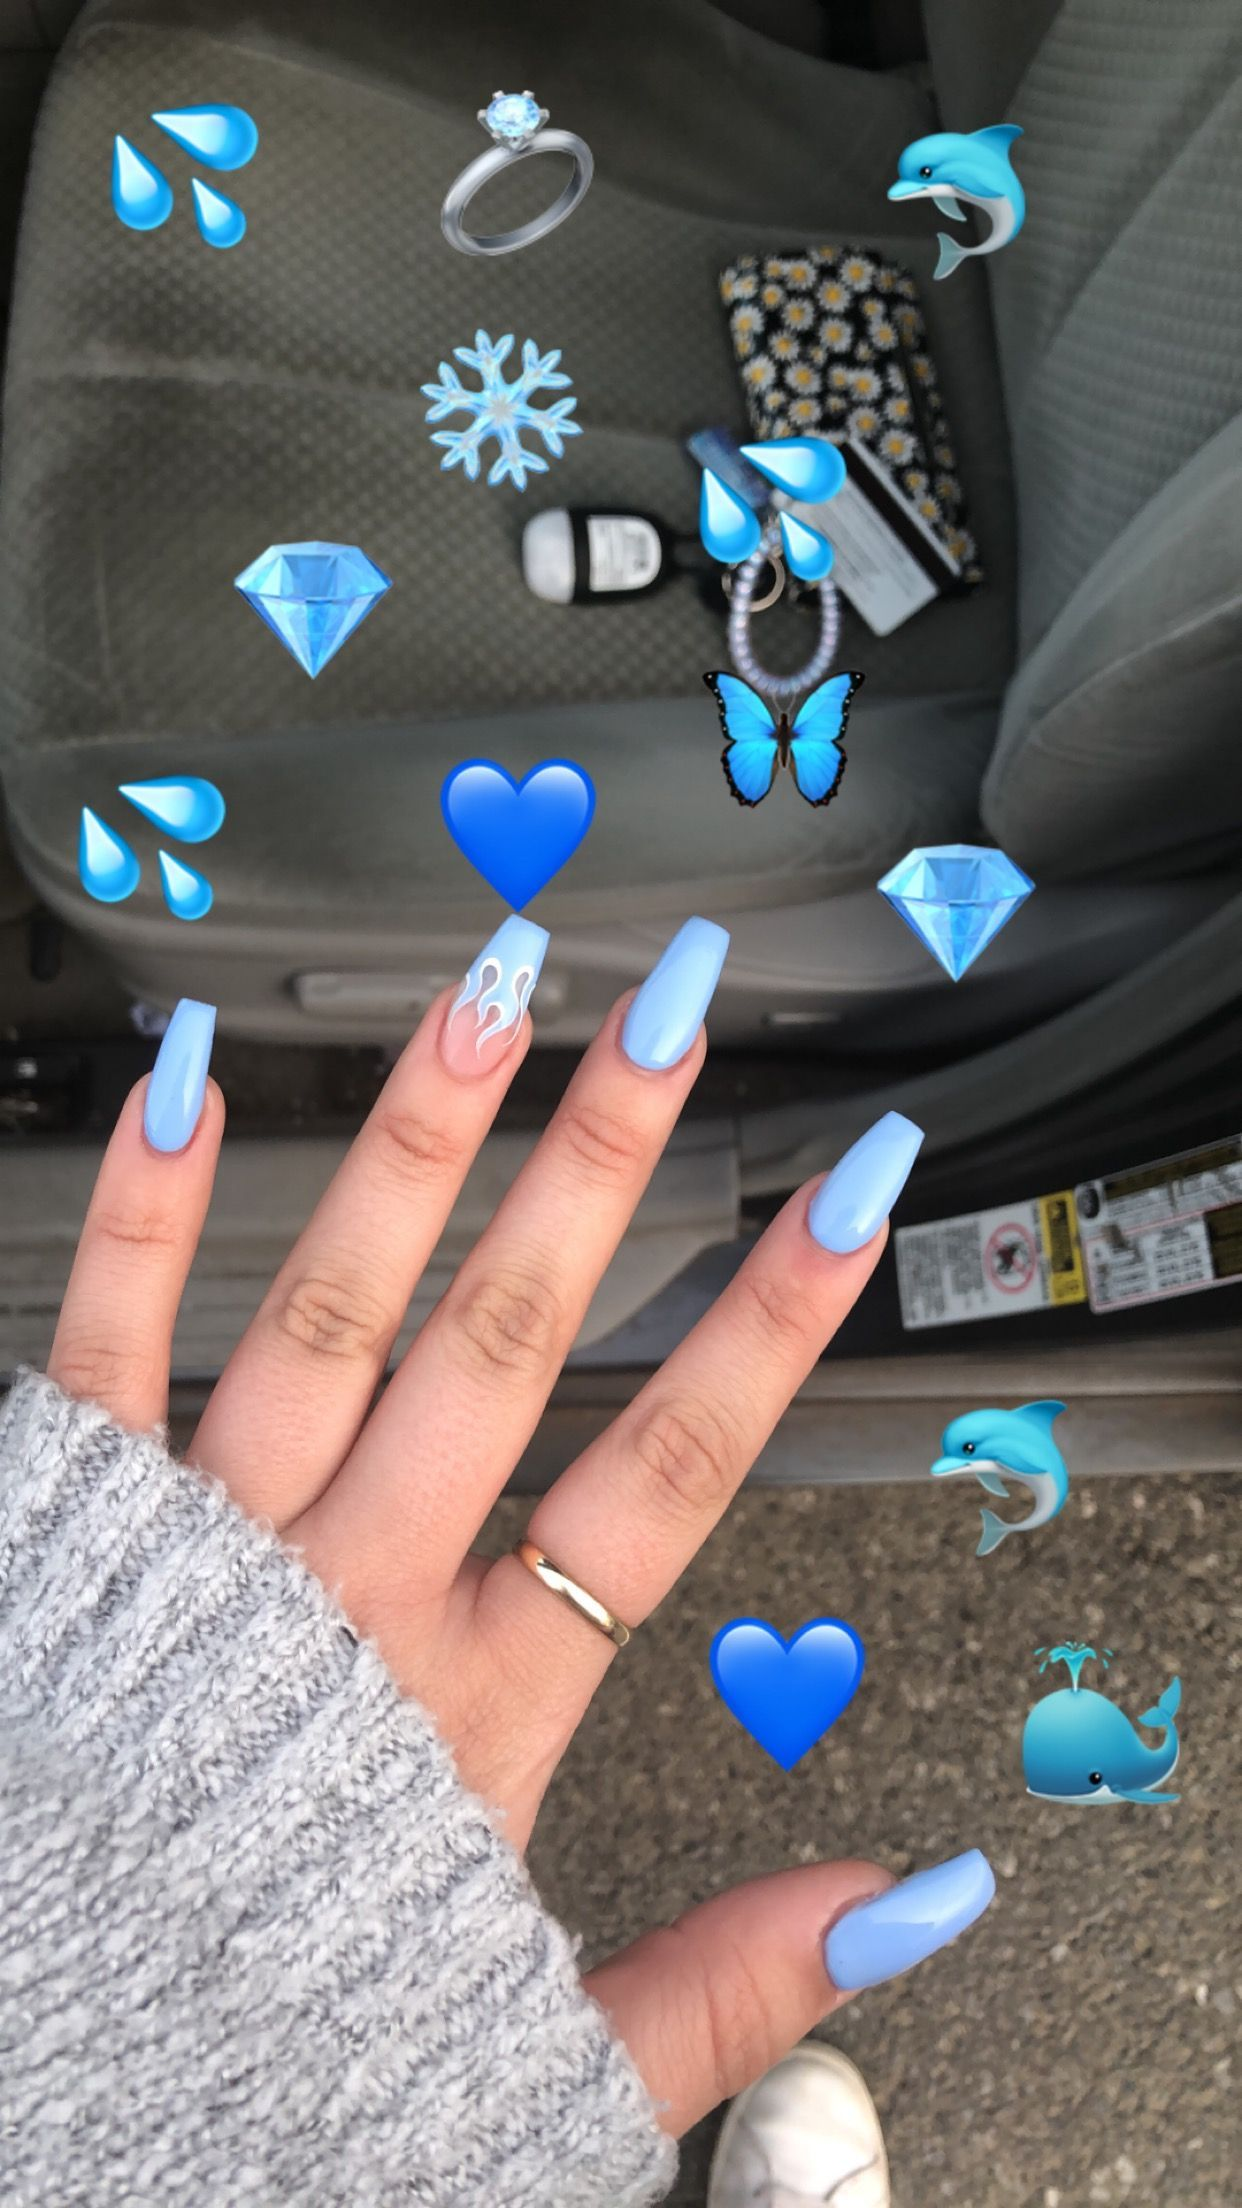 ✧follow ✧juliana dawdy✧ for more like this✧ - Acrylic Nails Coffin - Honorable BLog